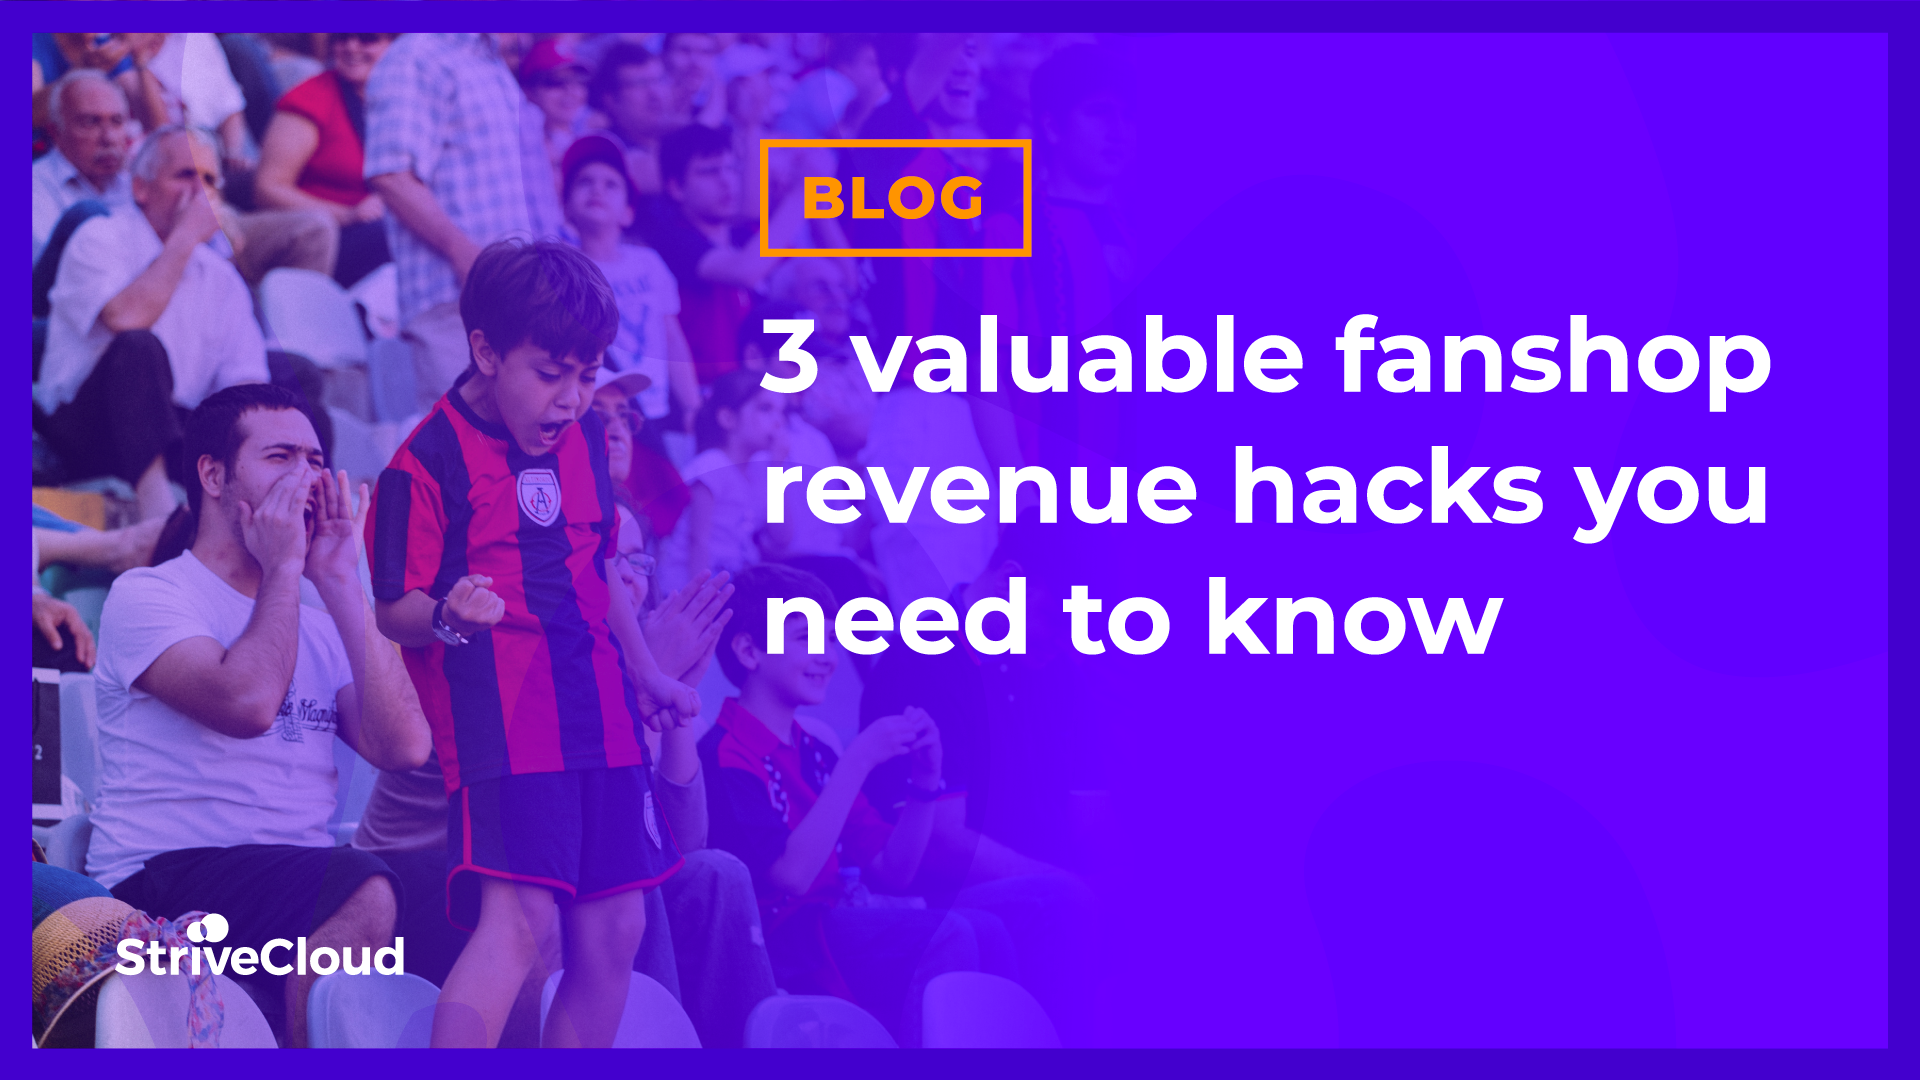 3 valuable fanshop revenue hacks you need to know